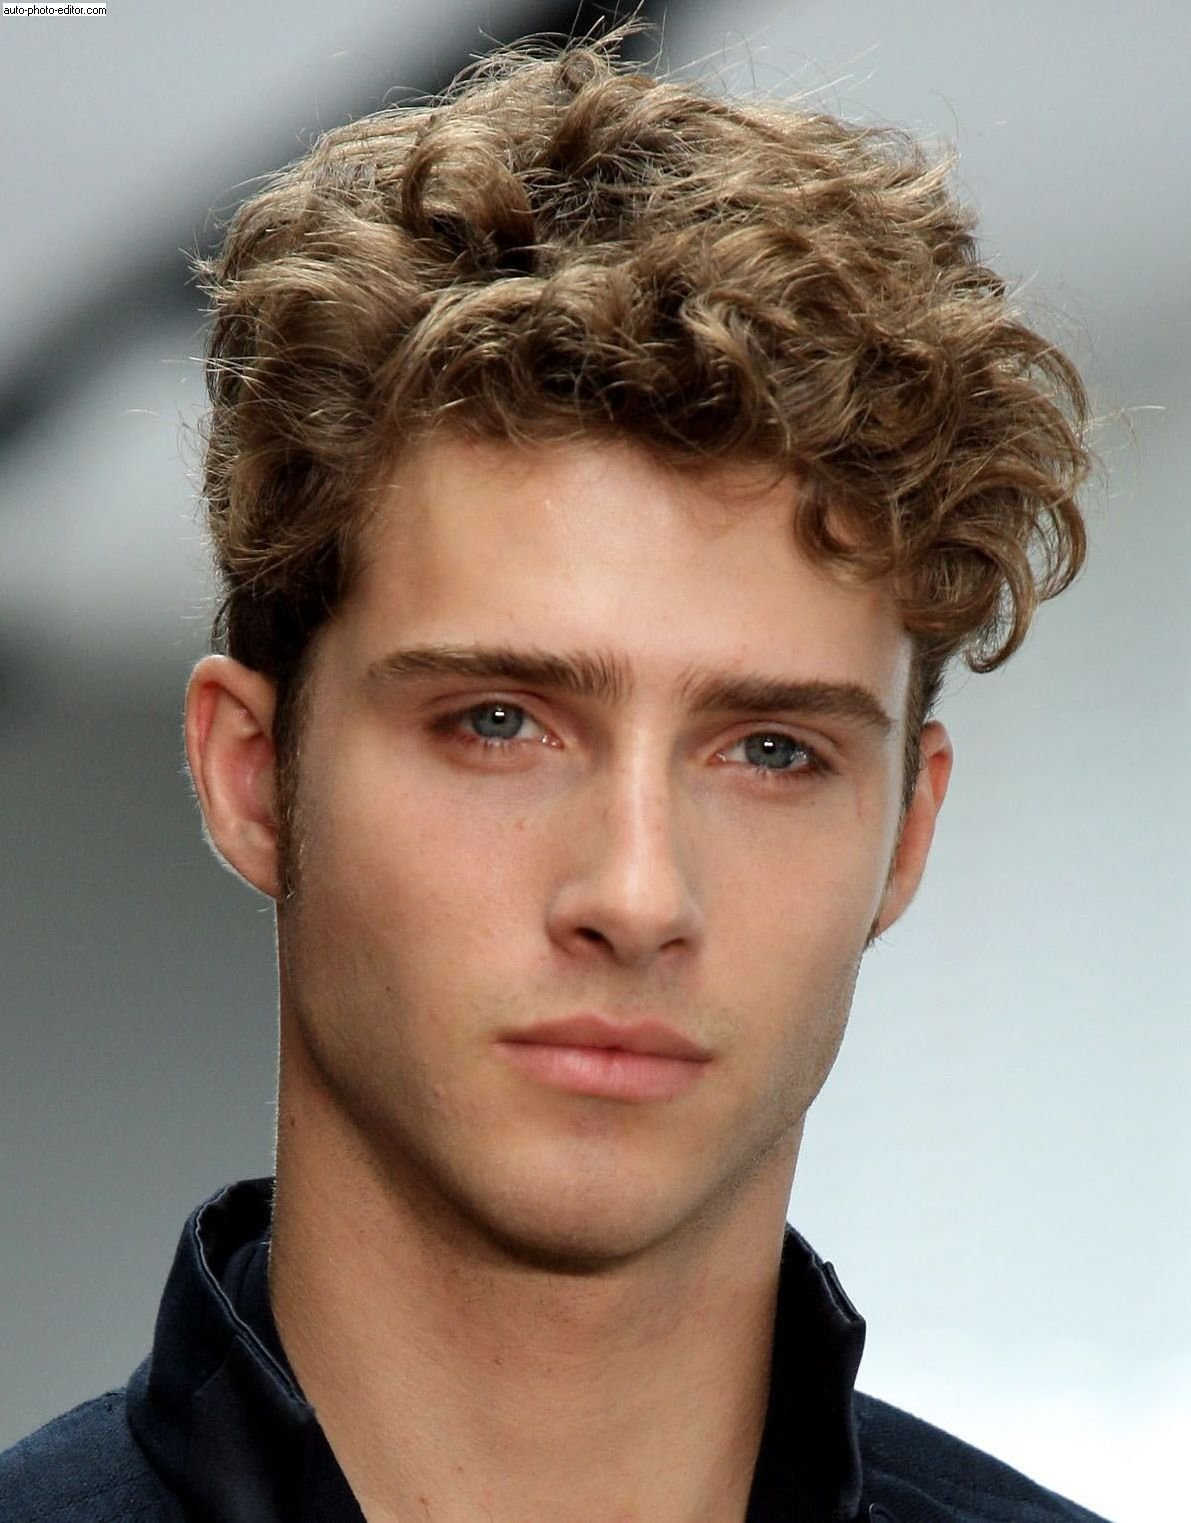 The Best Curly Hairstyles For Men Curly Hairstyles Curly And Pictures